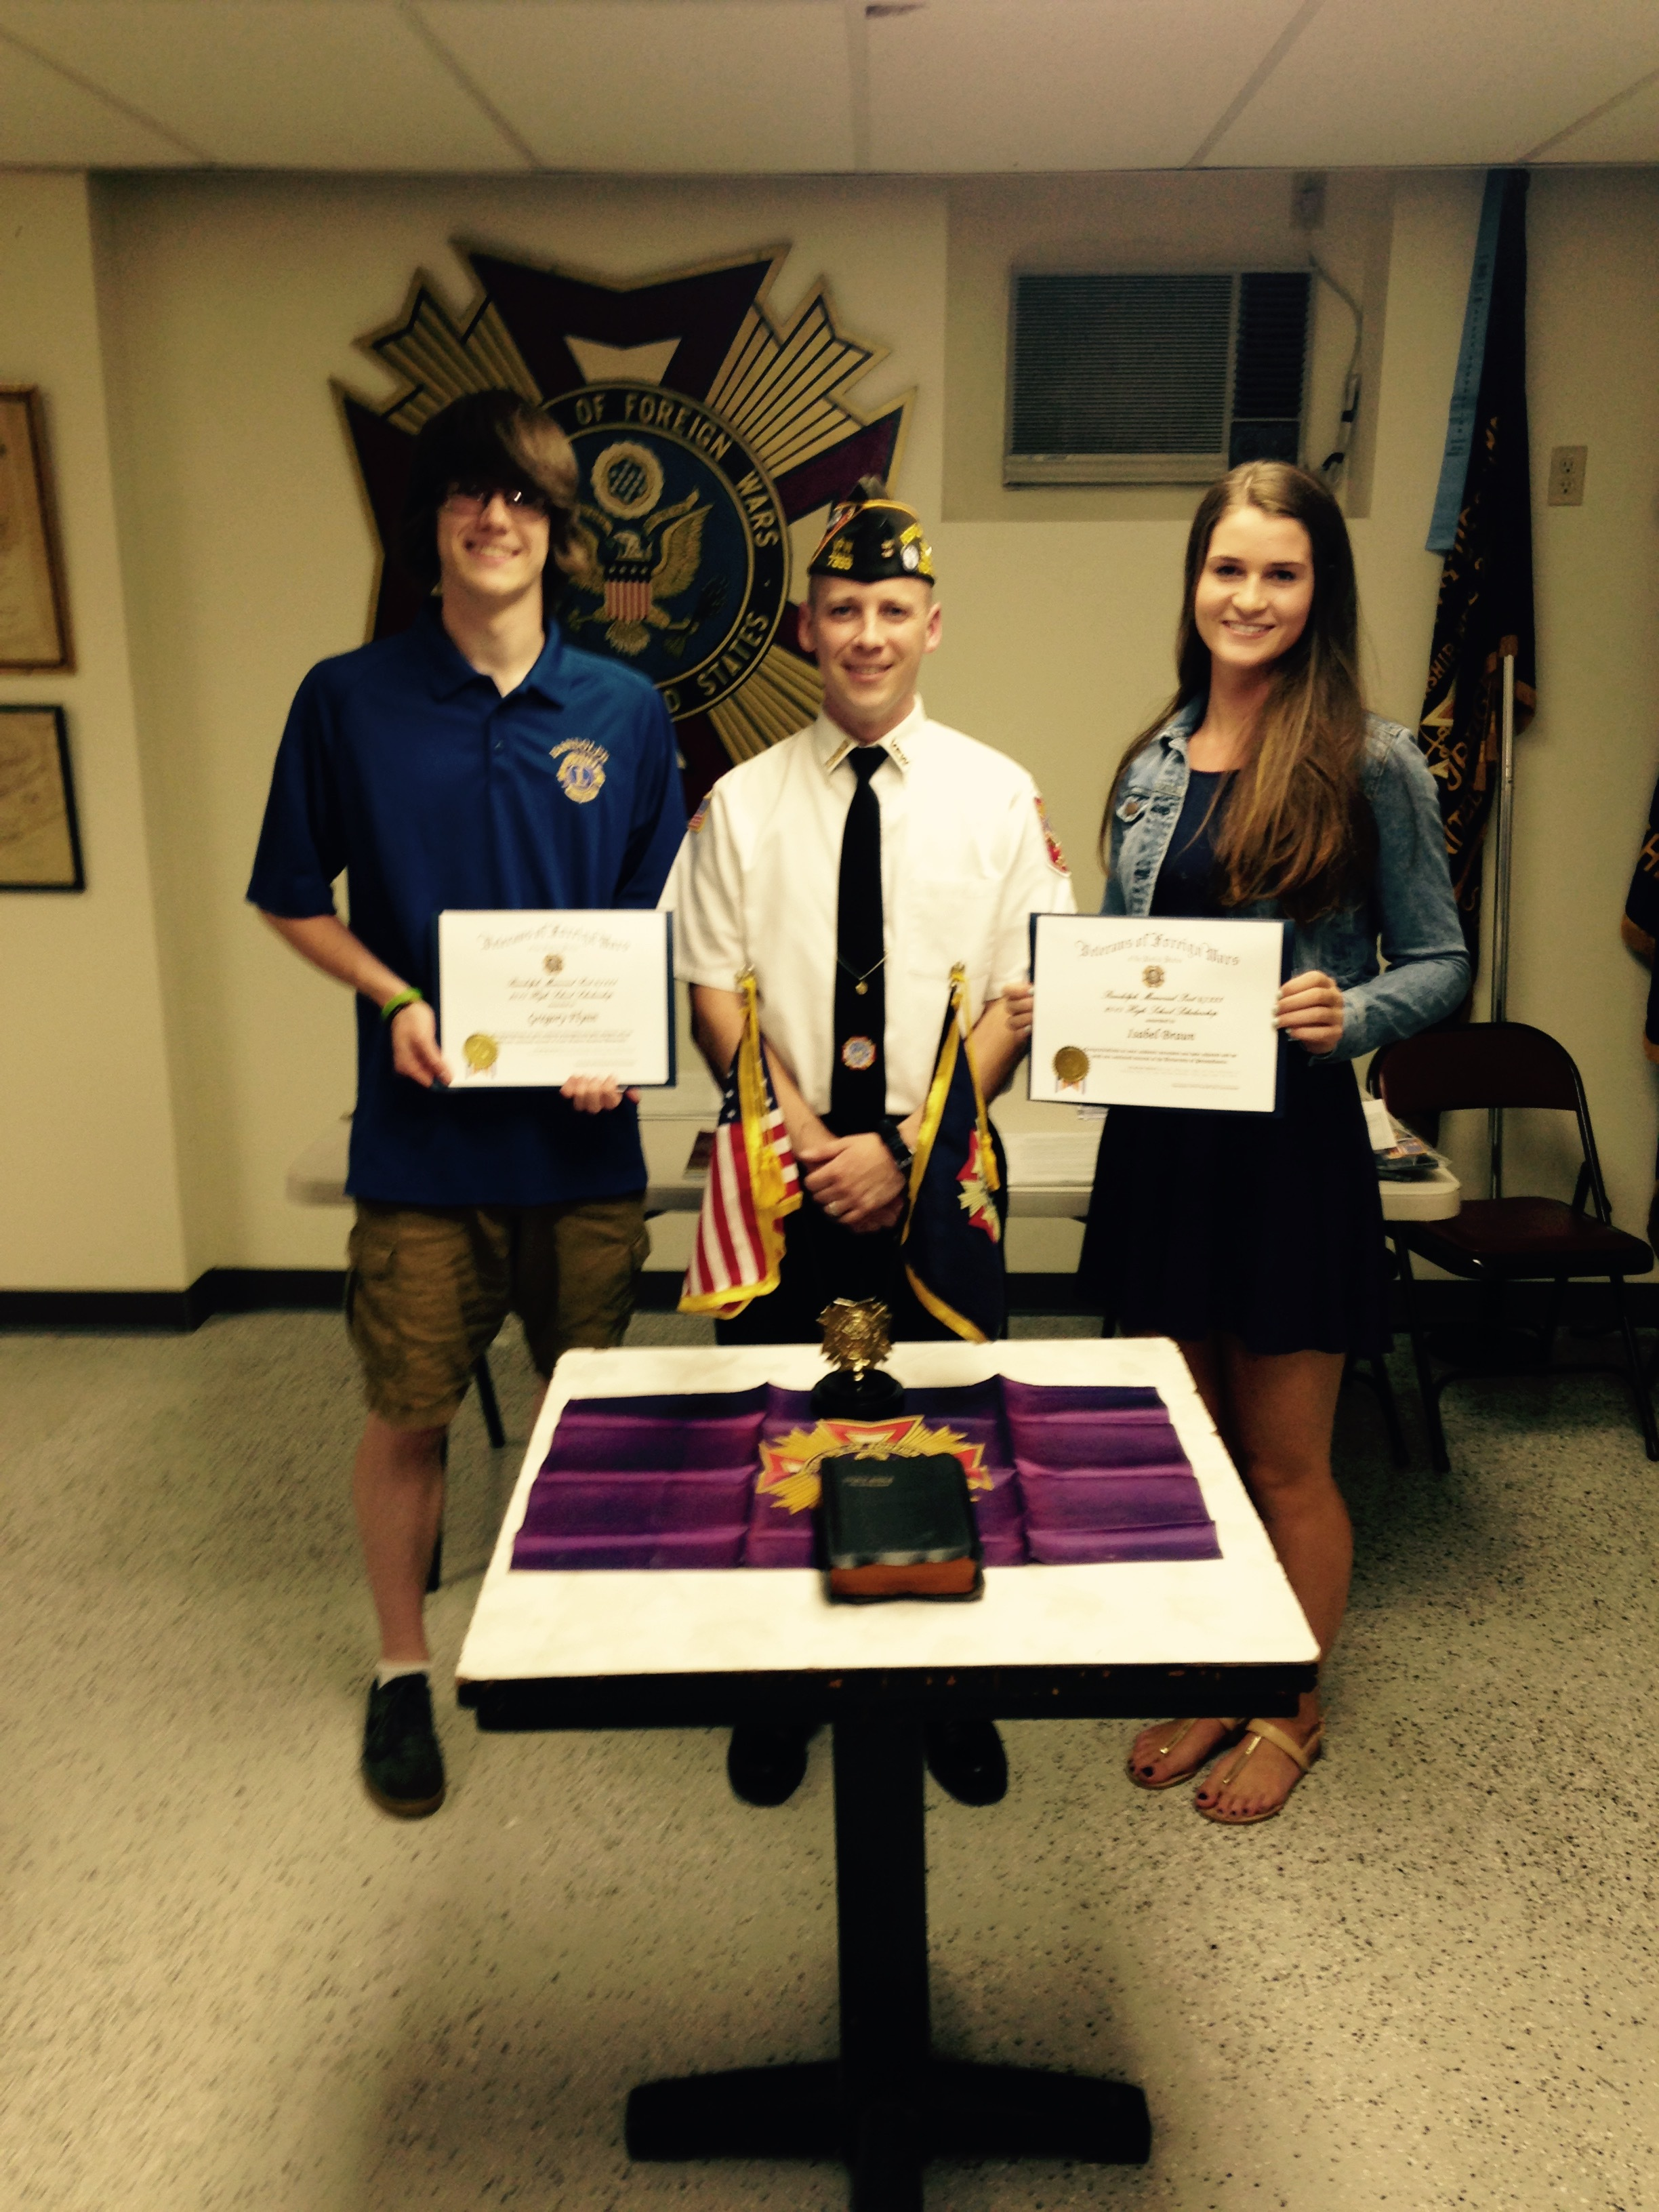 341e1b7037f7b6b5f131_Randolph_VFW_Scholarship_recipients_2015.jpg